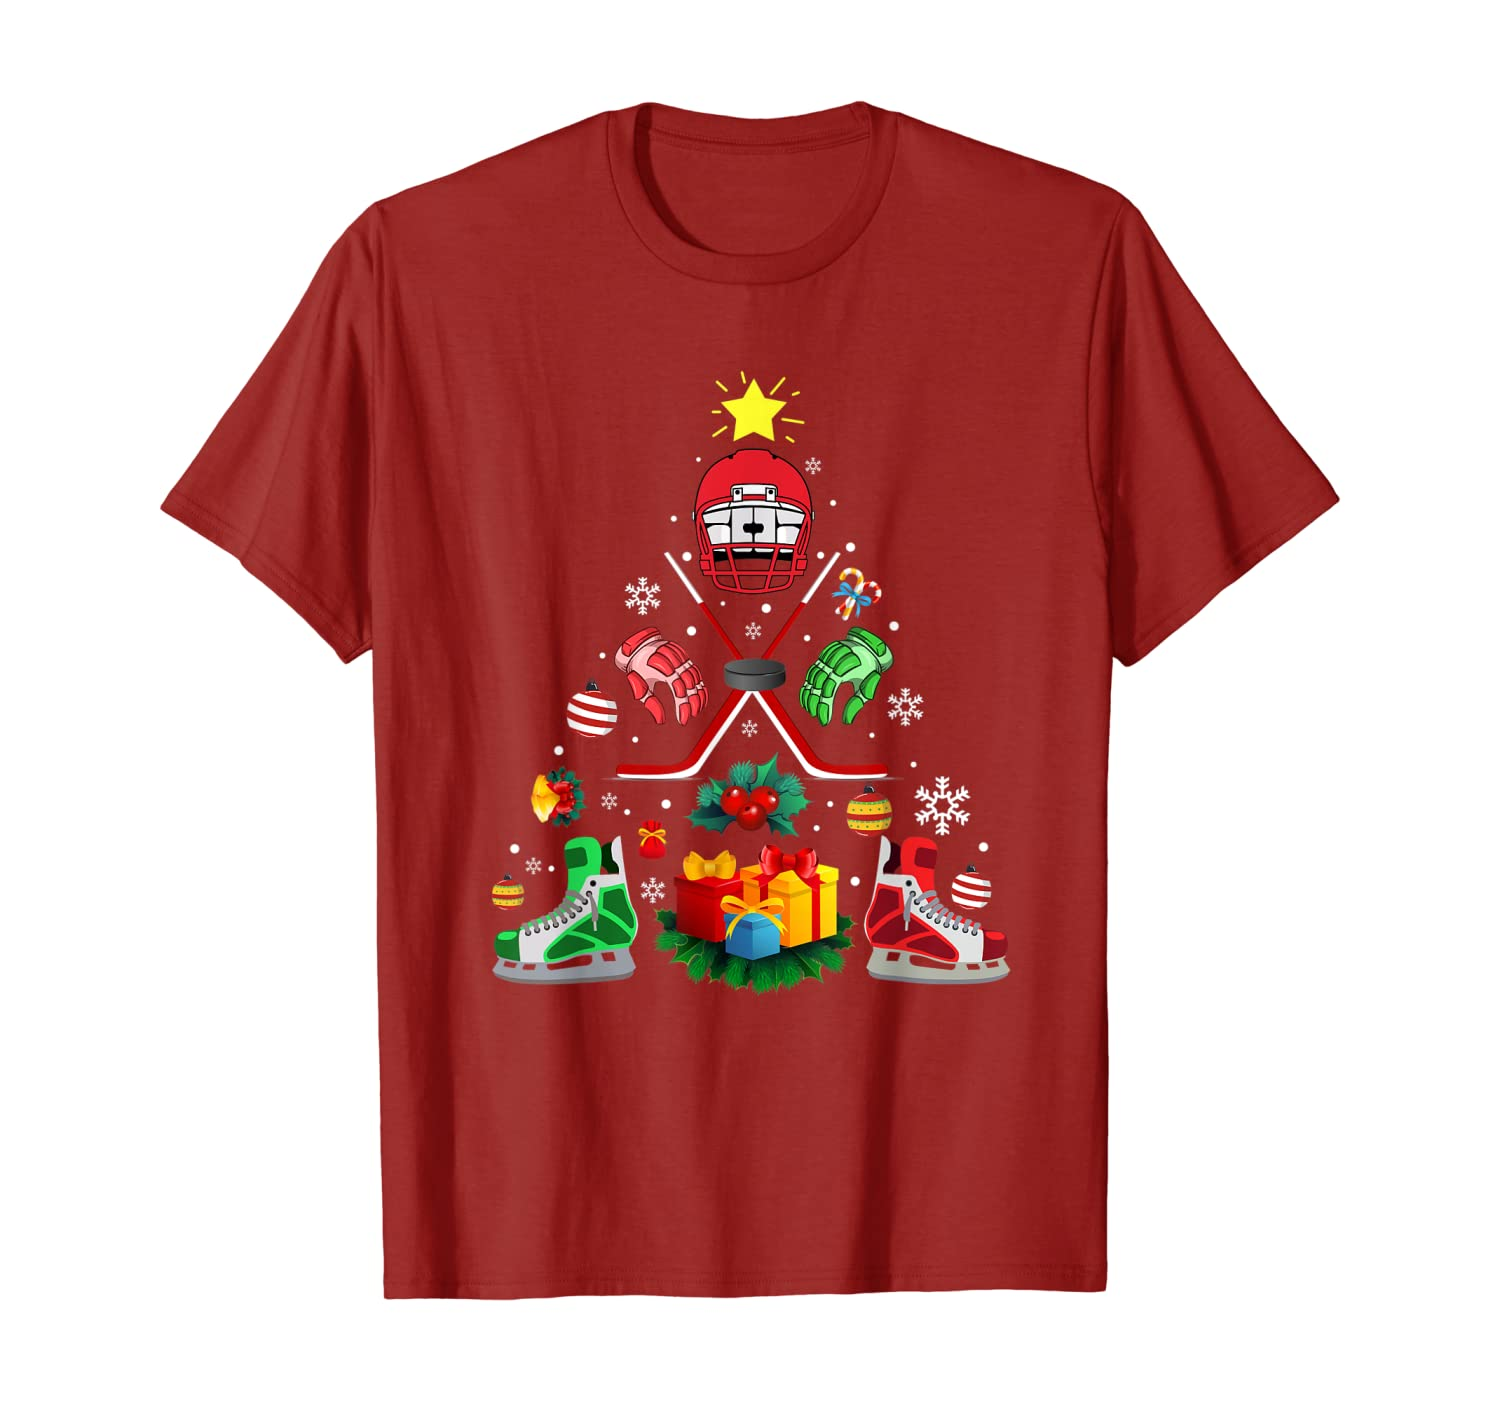 Ice Hockey Christmas Ornament Tree Funny Xmas Gift Boys T-Shirt